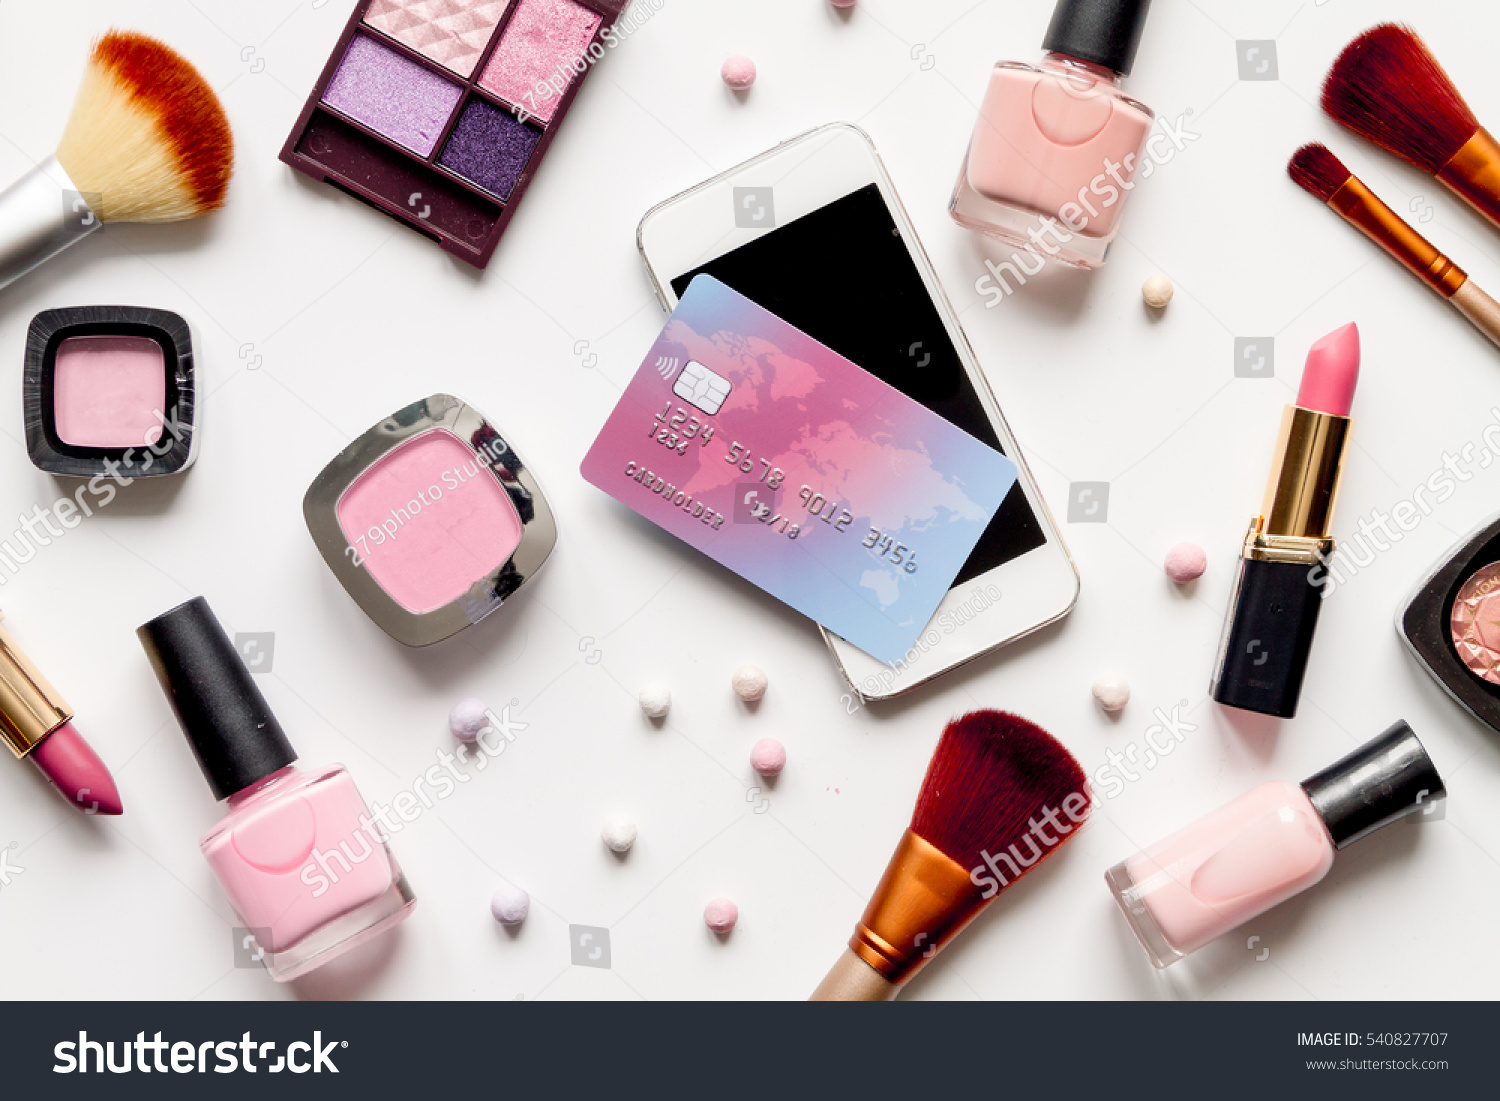 Online shopping for lipstick